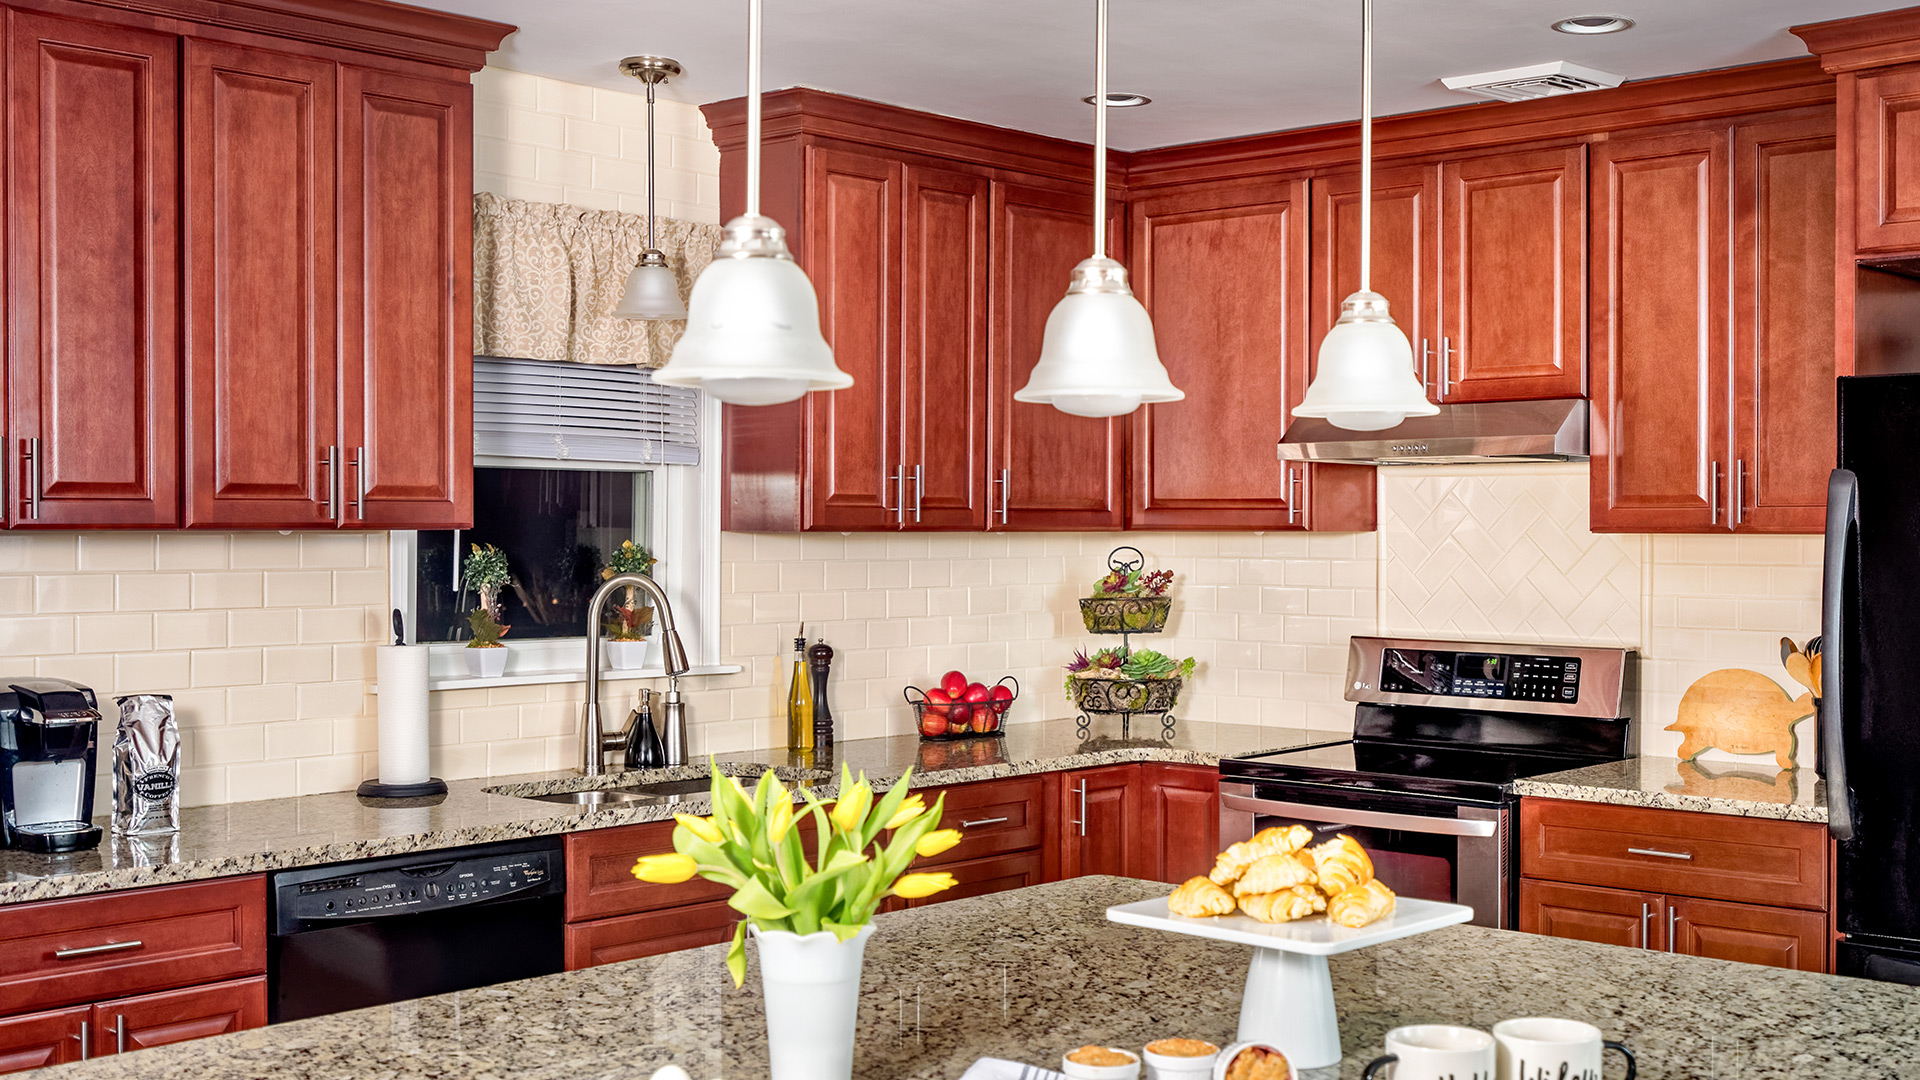 With Brandy cabinets, your kitchen will exude a warm old-world charm with modern conveniences.